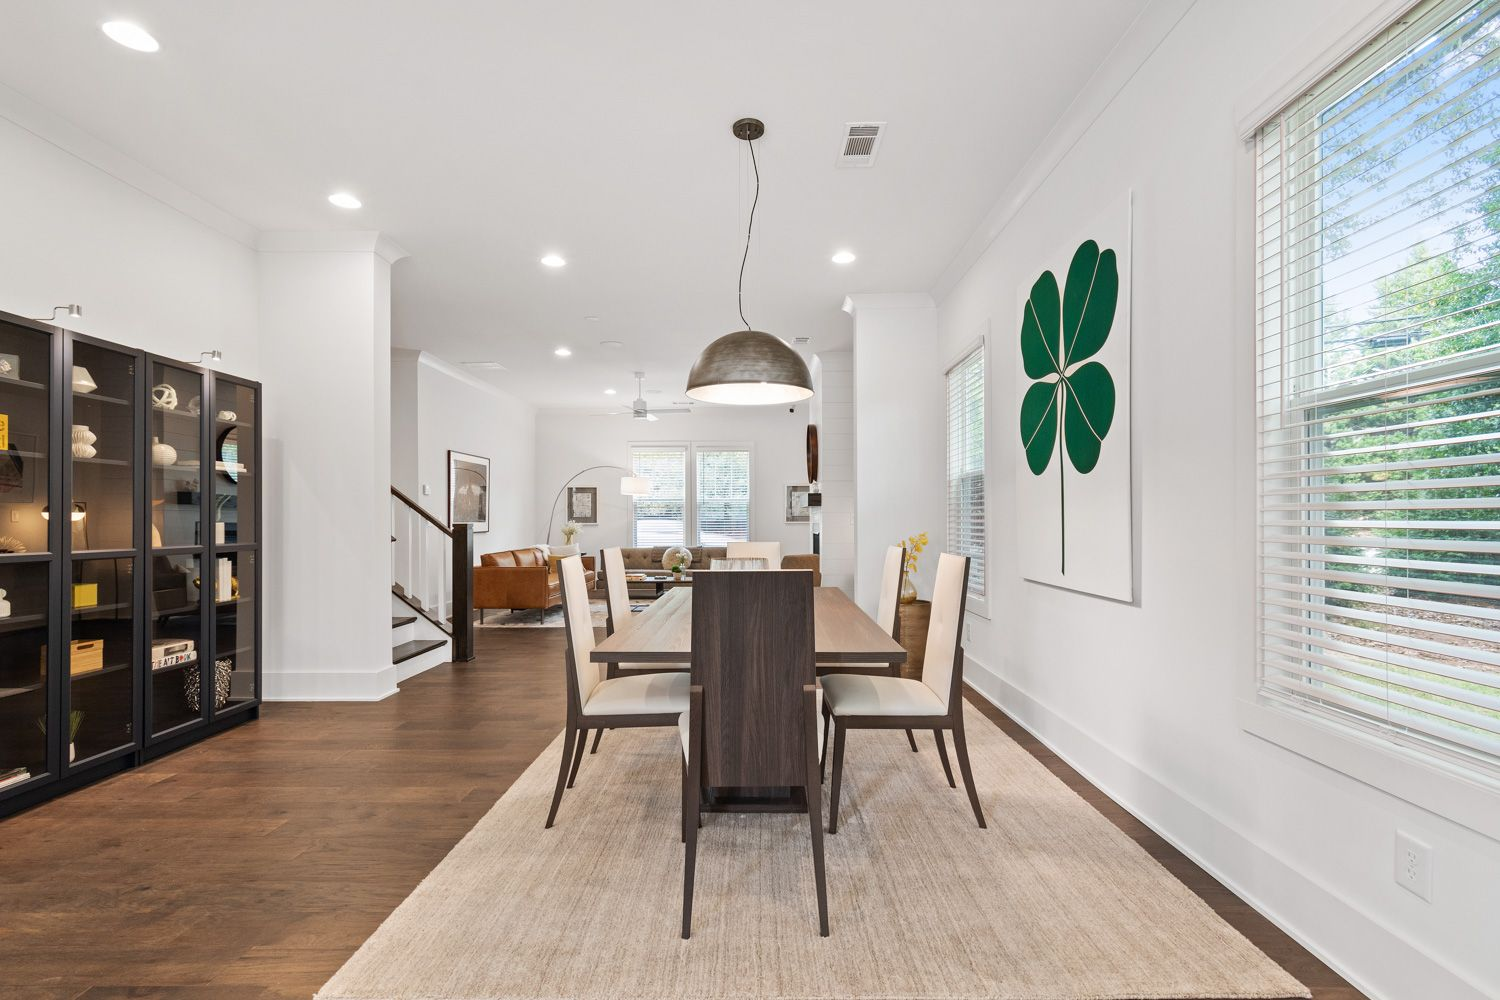 Living Area featured in the Callanwolde By Minerva Homes in Atlanta, GA